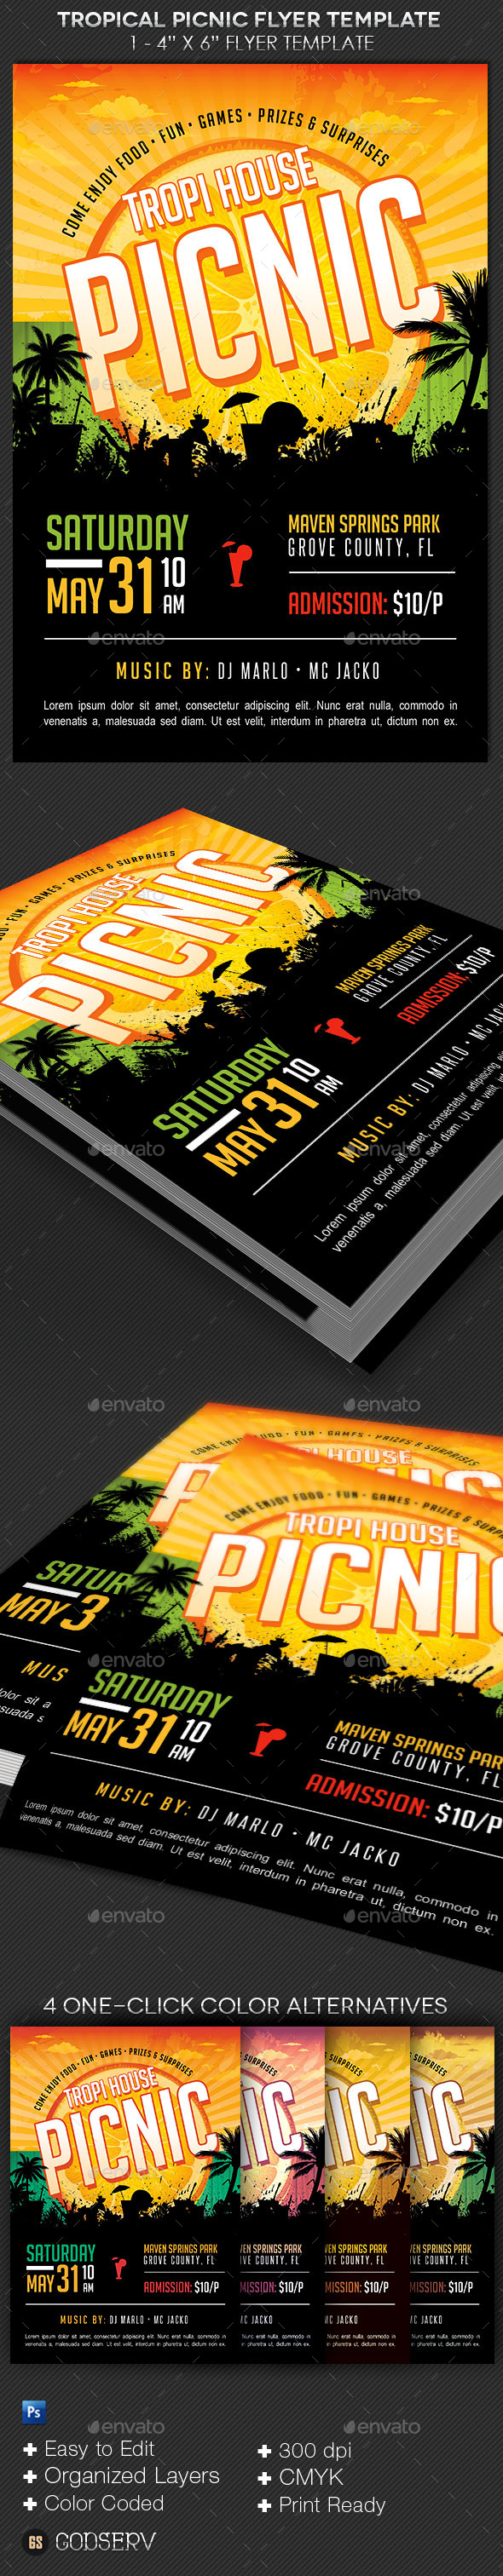 GraphicRiver Tropical Picnic Flyer Template 10424669